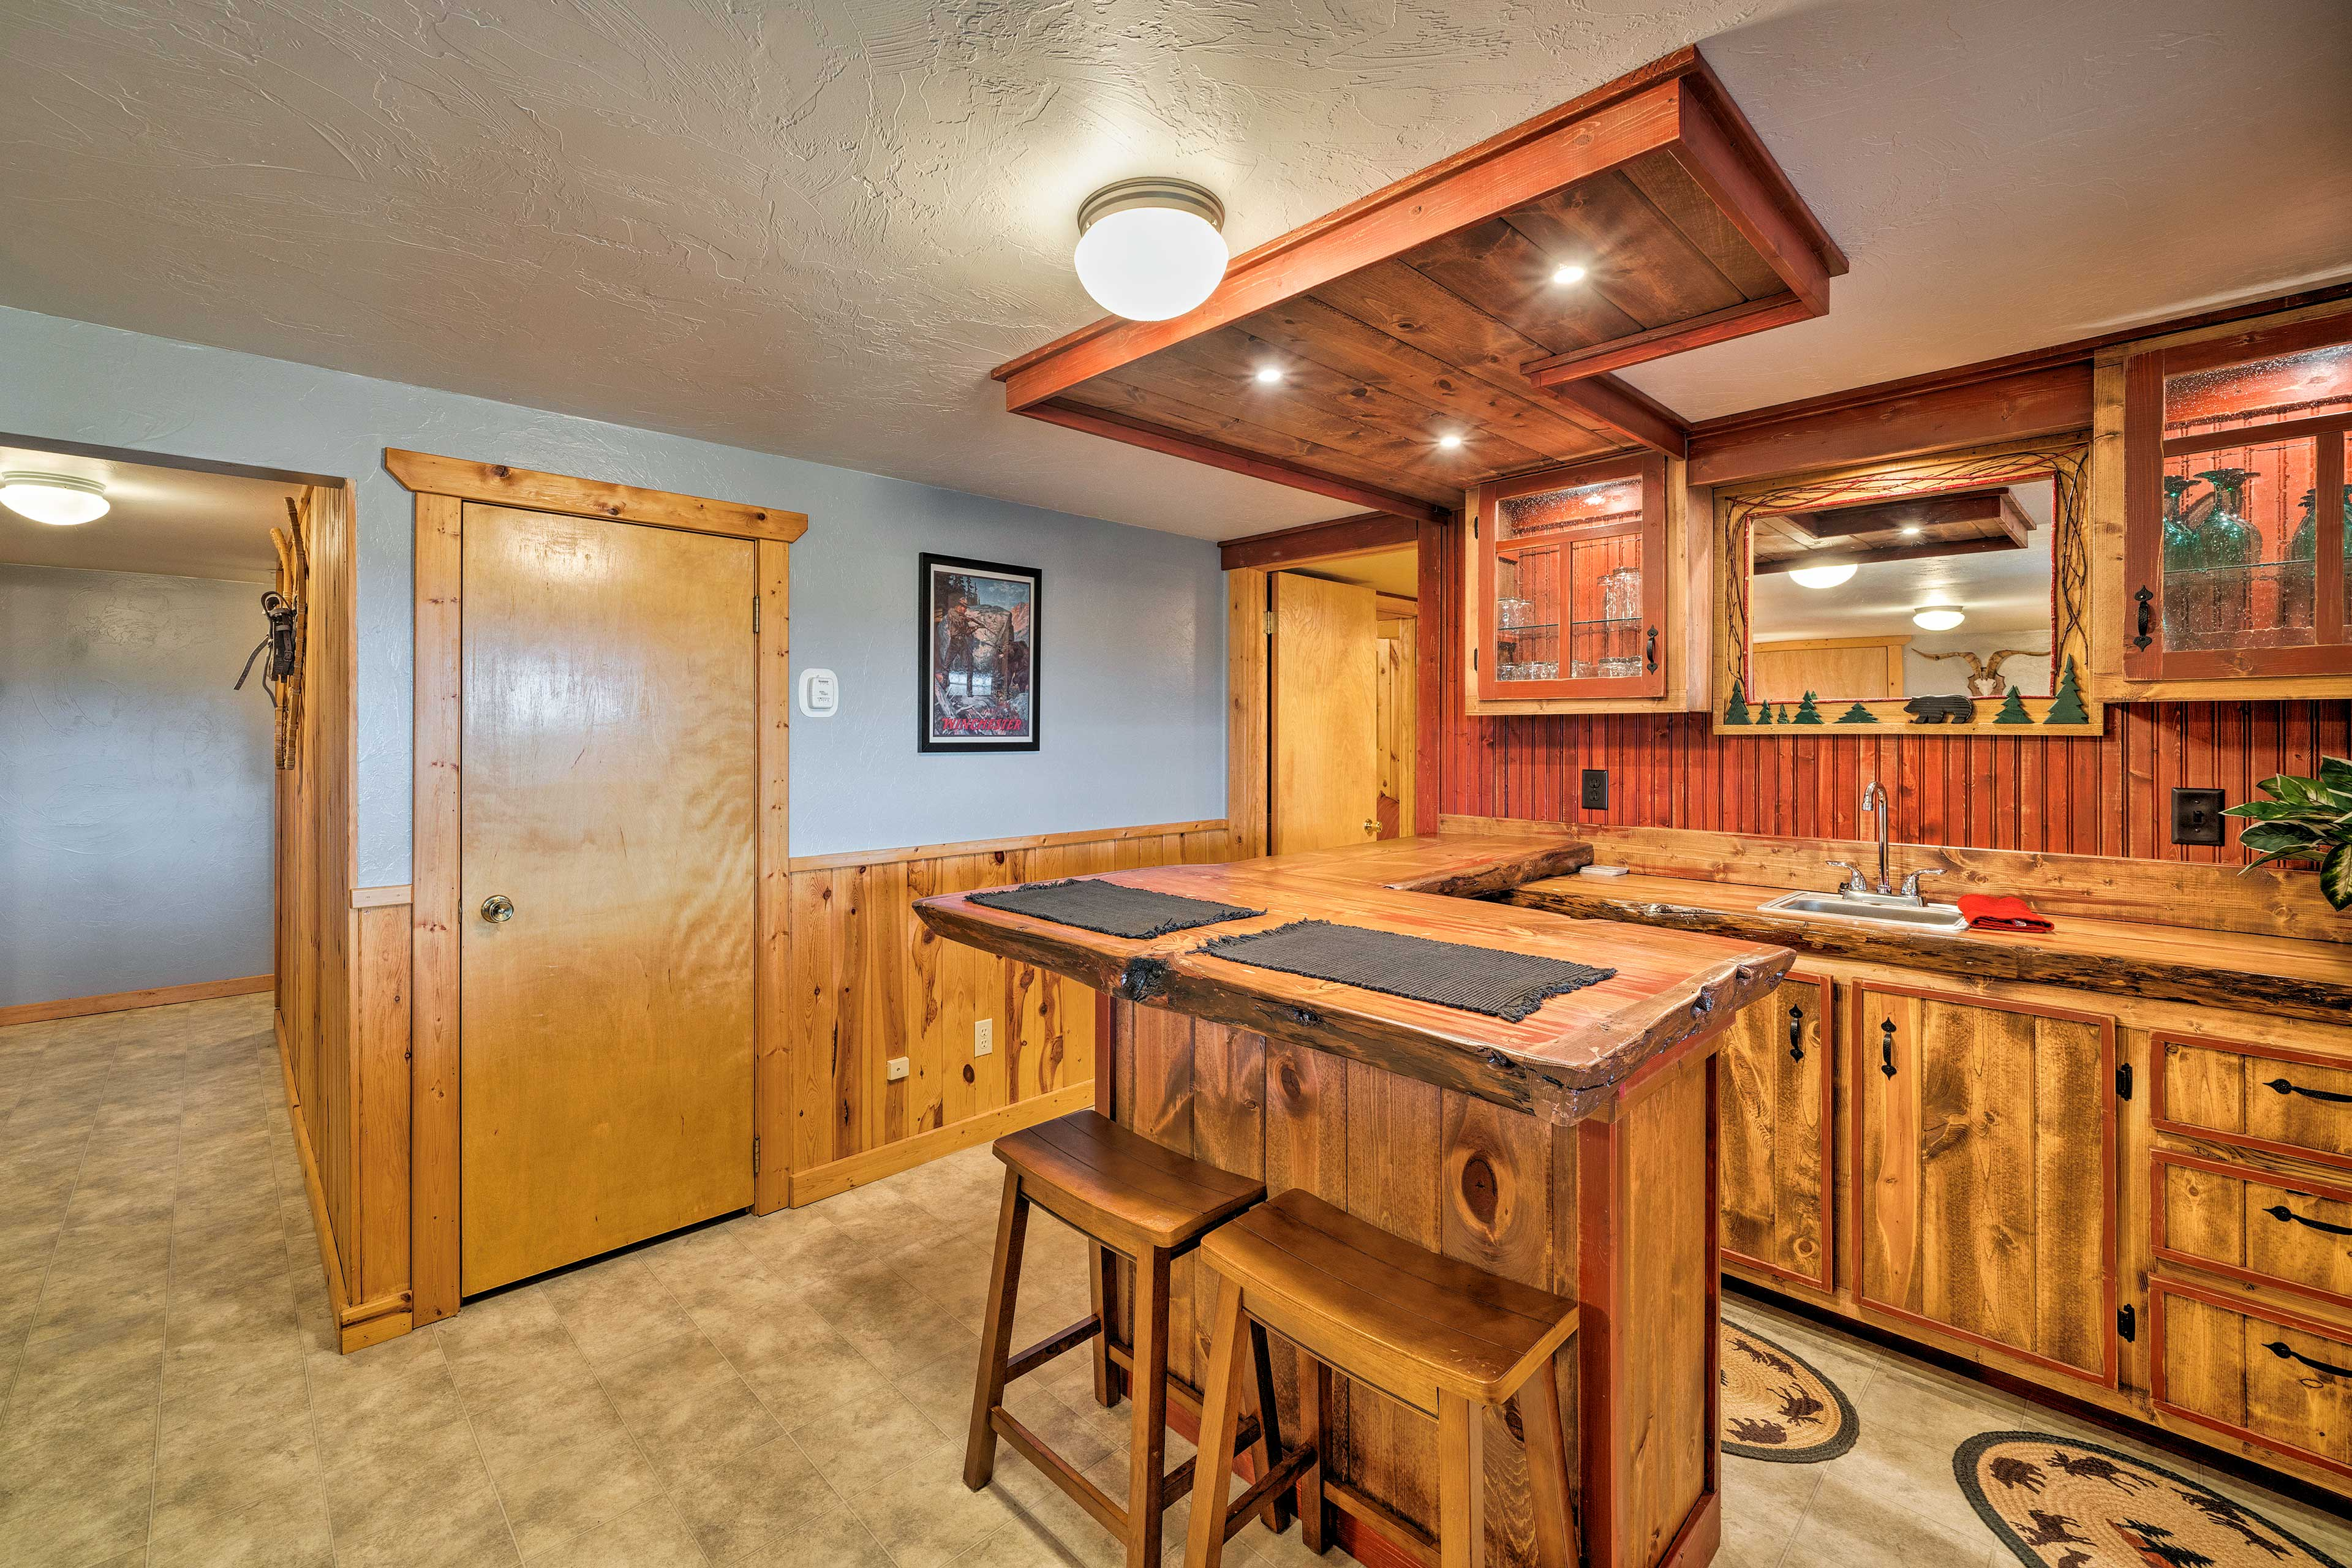 Downstairs, you'll find a wet bar!